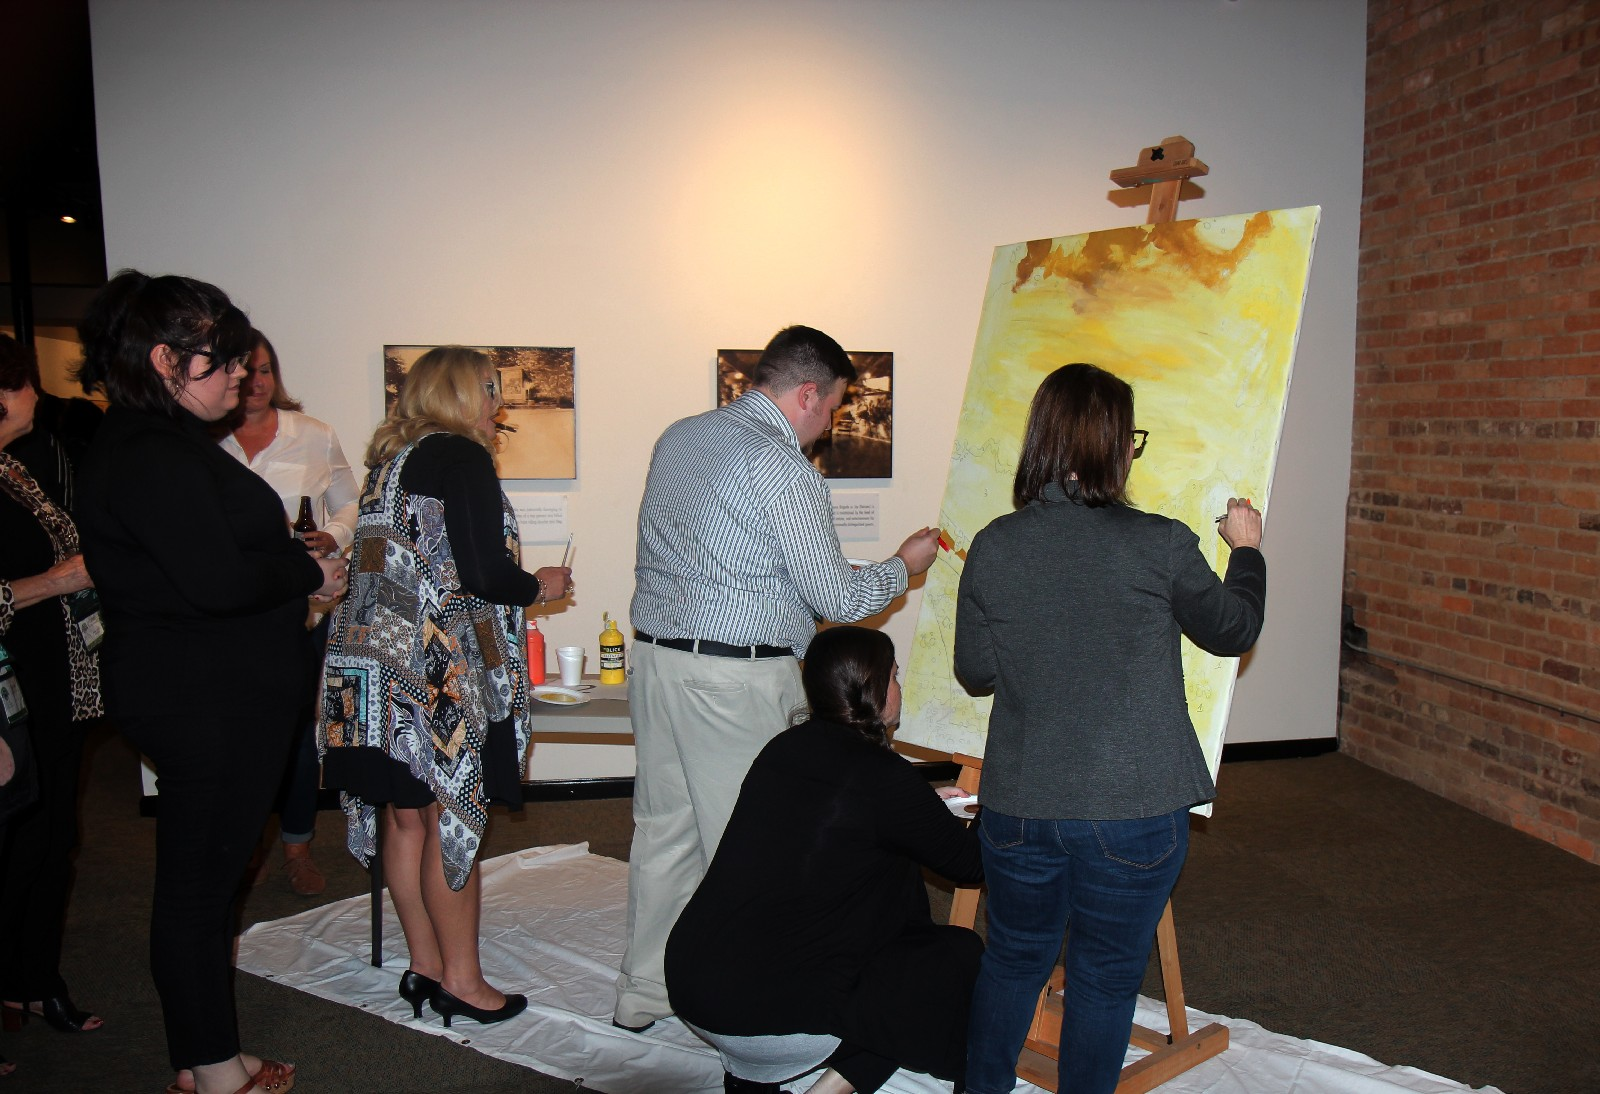 Conference attendees participating in a paint-by-numbers project during reception at Gadsden Museum of Art.